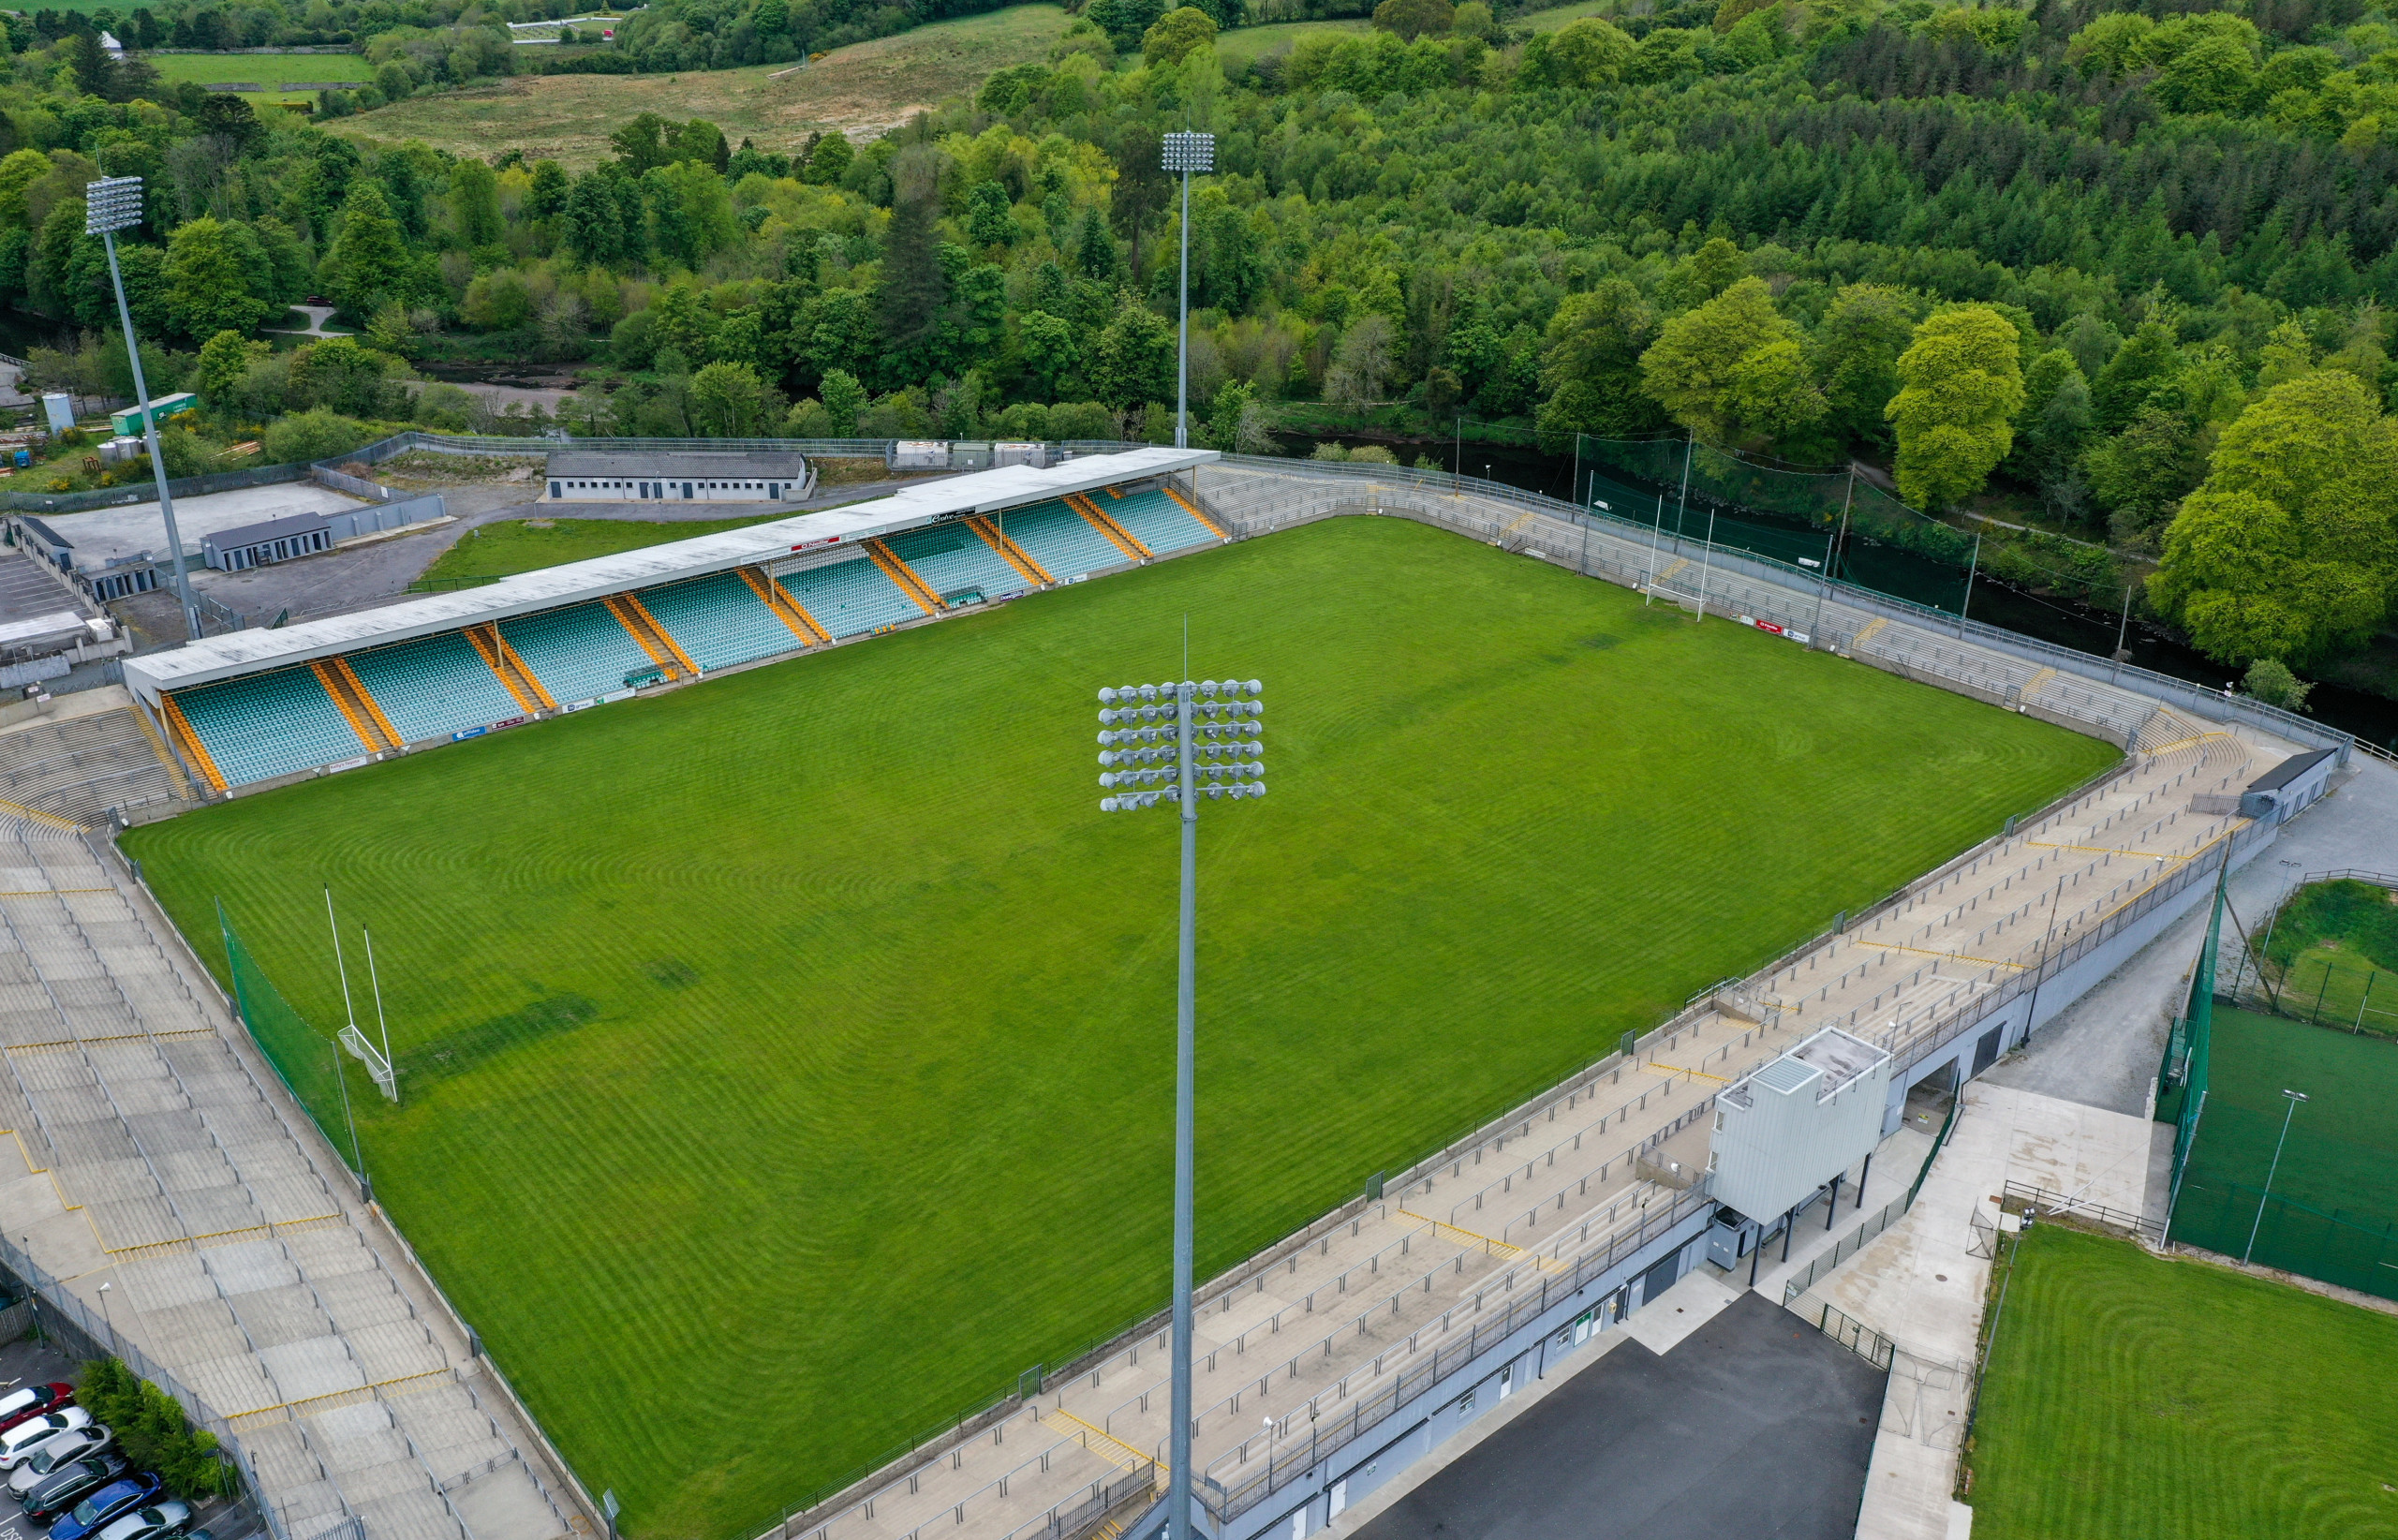 Information for supporters at this evening's Ulster Minor Football Championship fixture